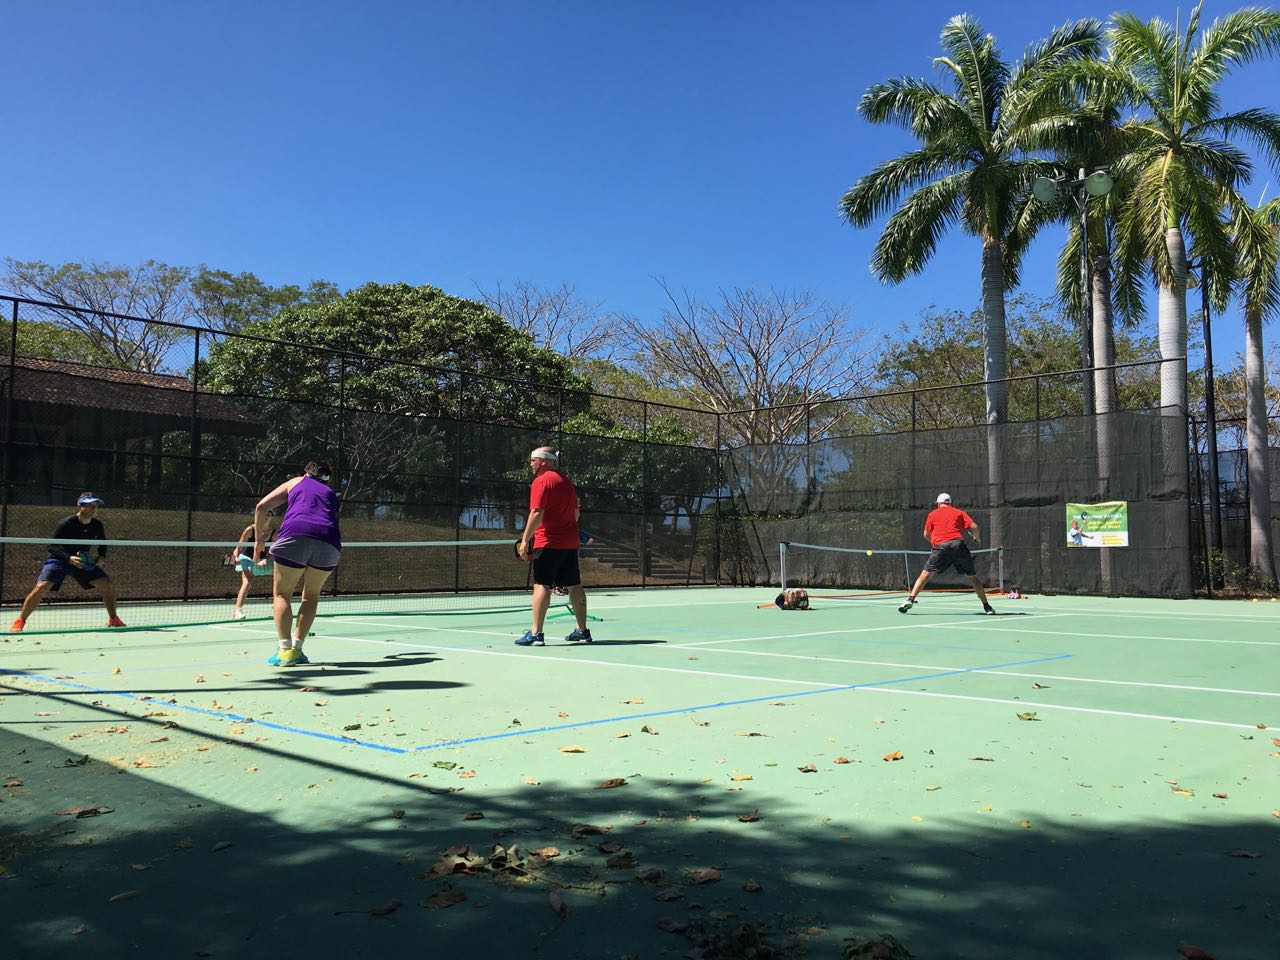 Playing Pickleball by the rules